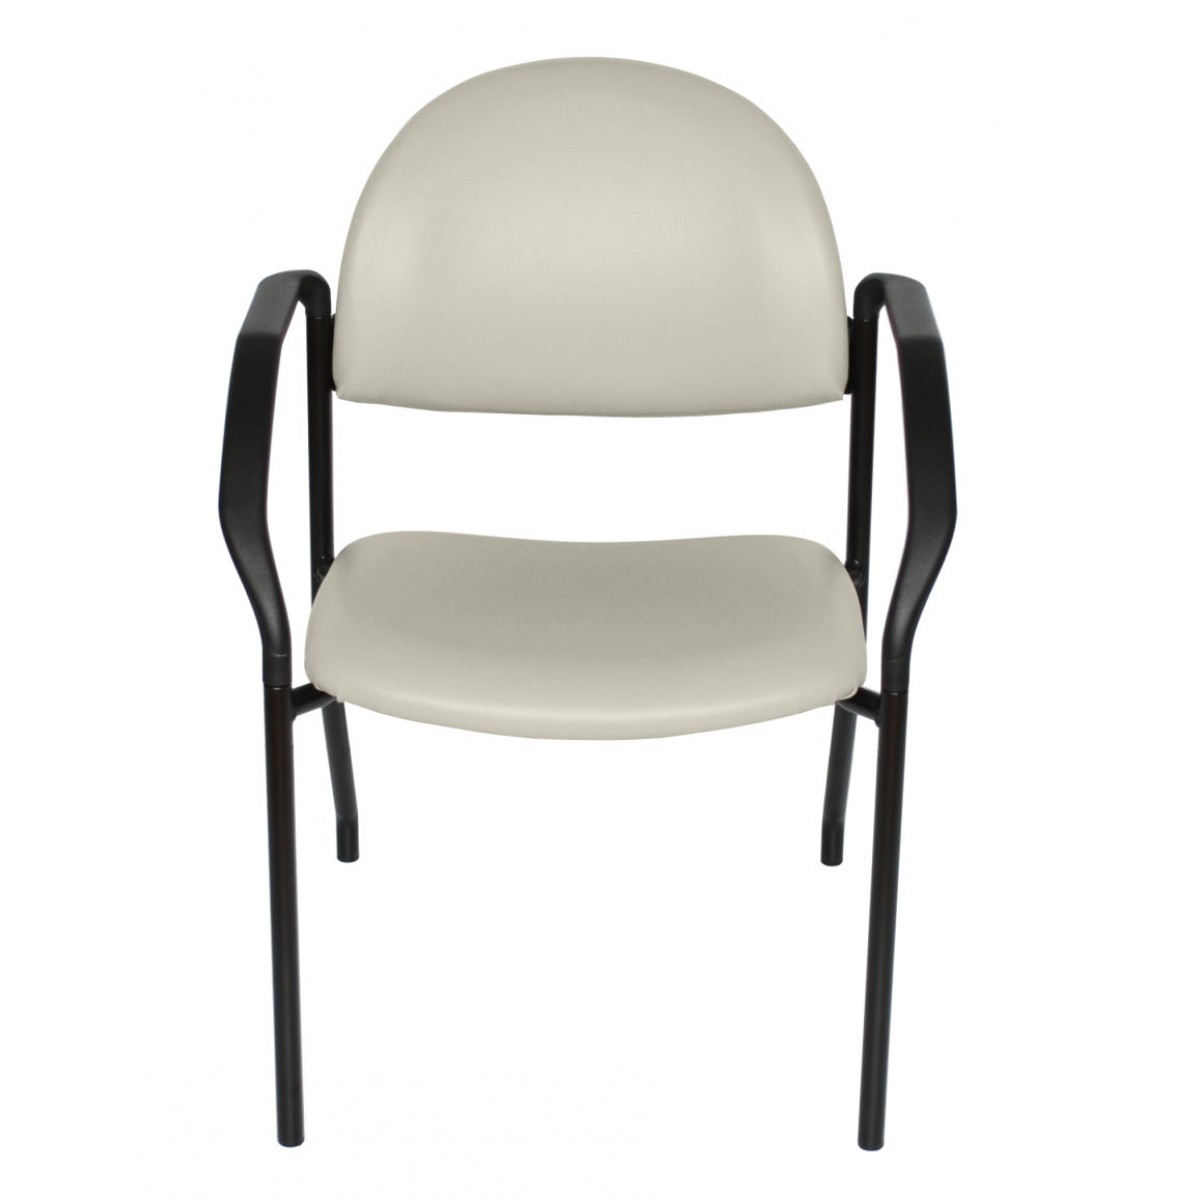 Exam Room Side Chair With Arms Office Chair Medical Side